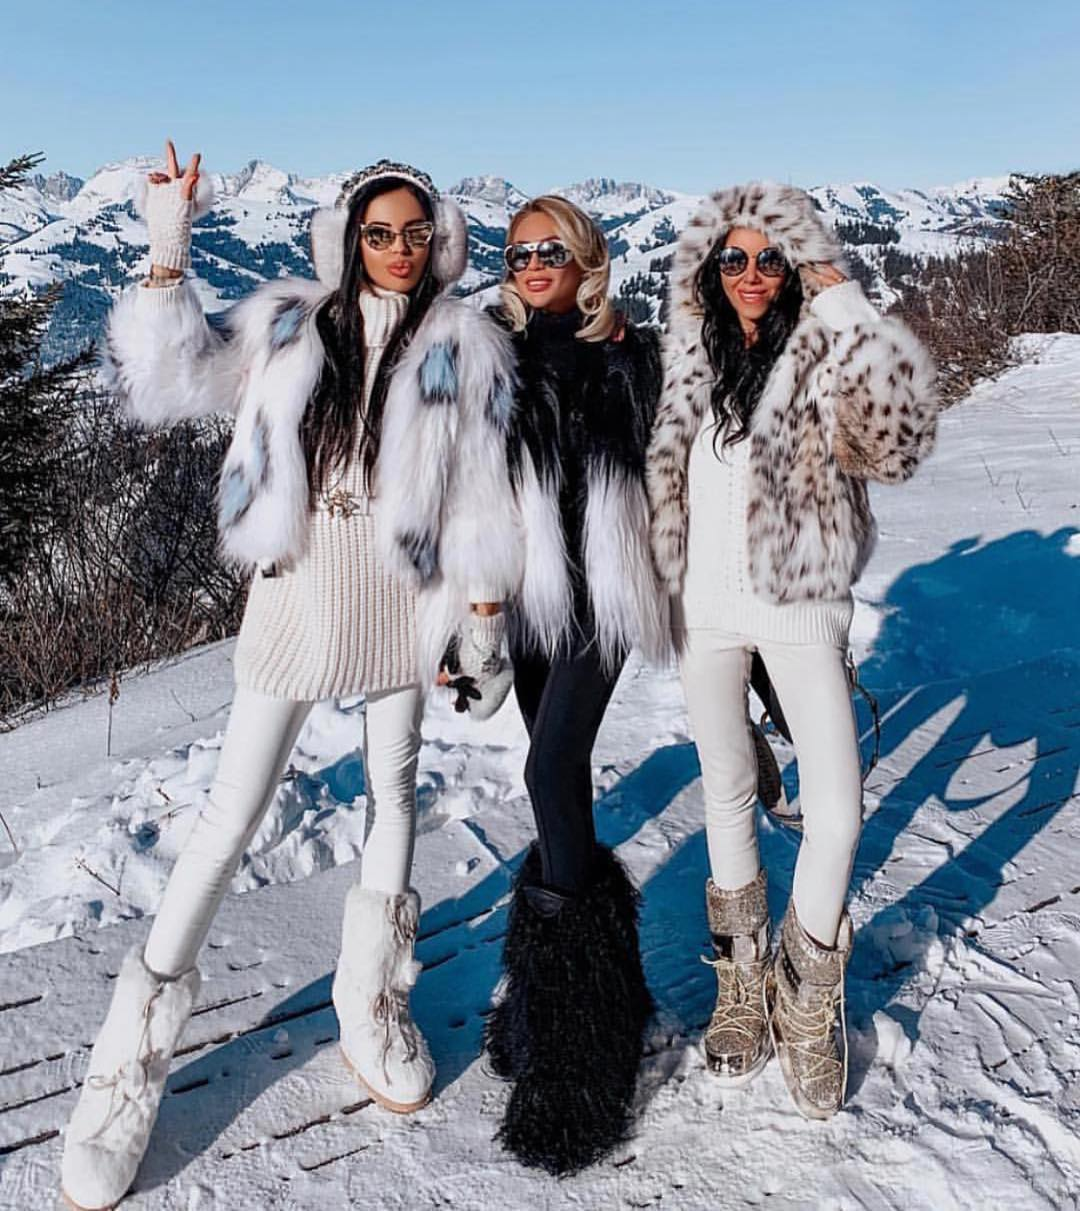 Fur Jackets With Skinny Jeans And Fur Boots For Winter 2020